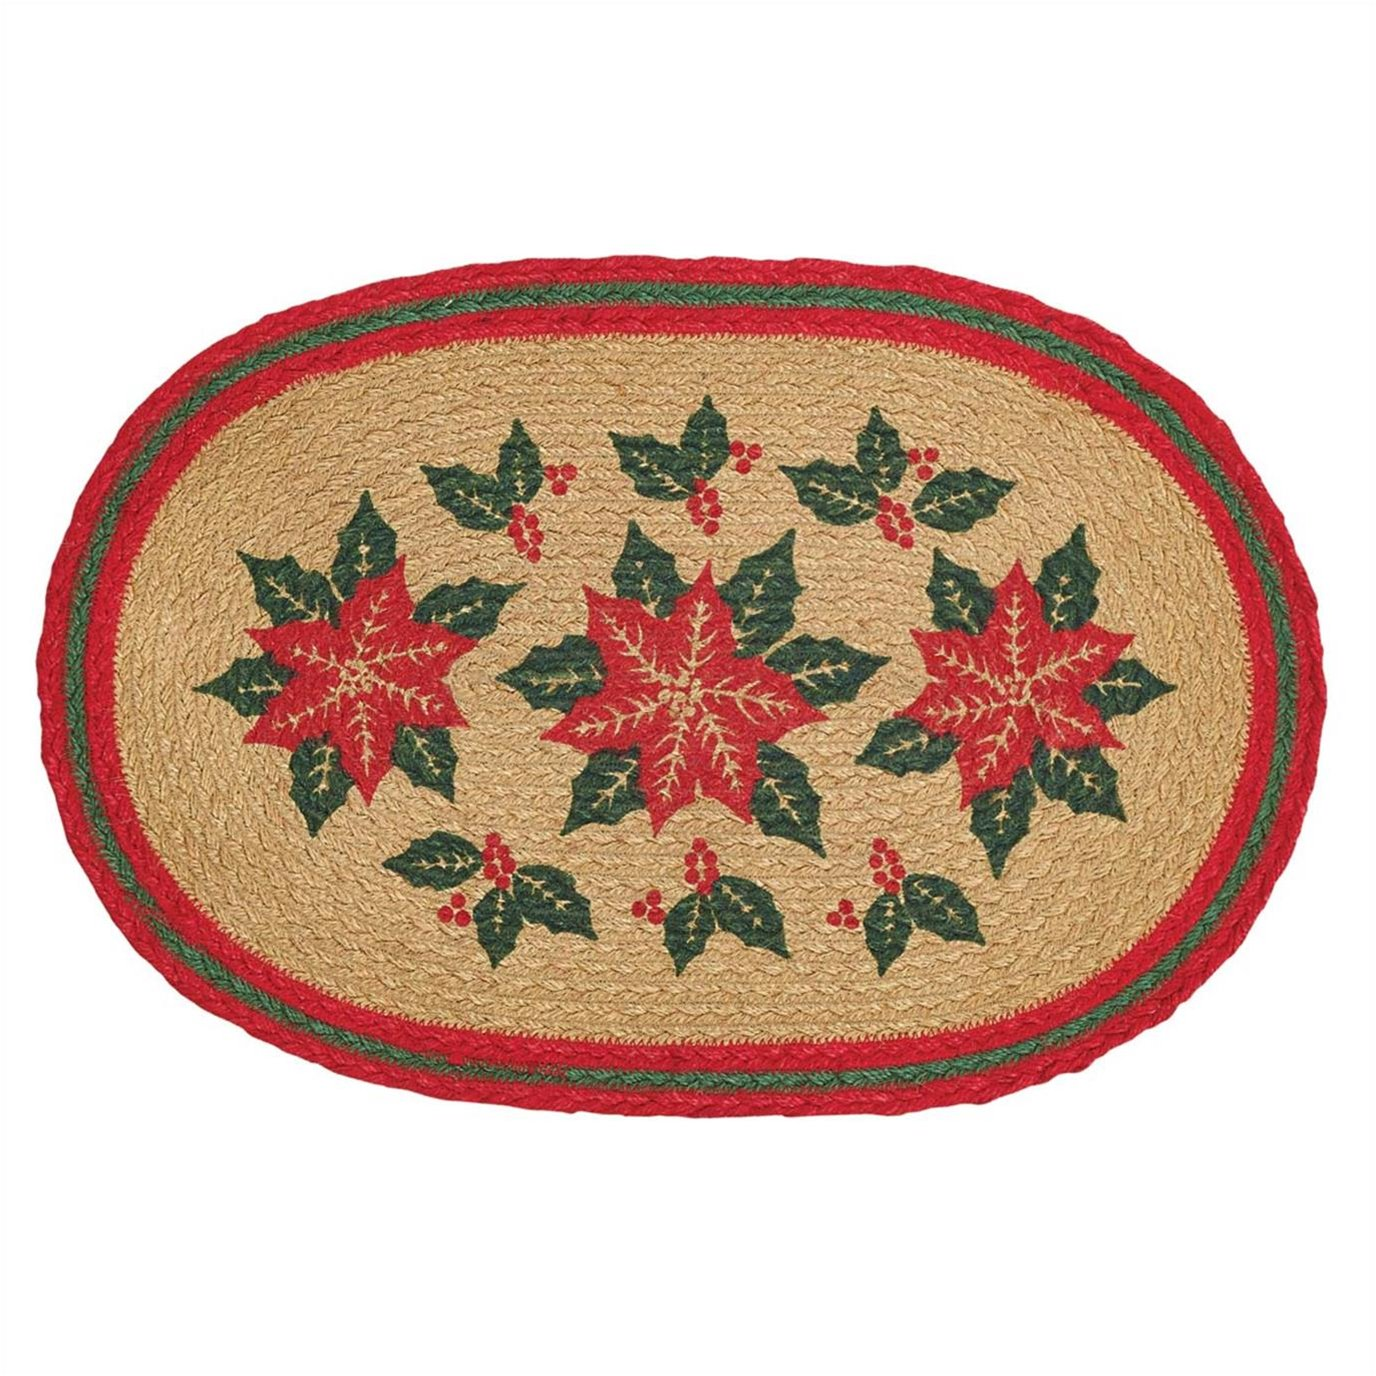 Poinsettia Jute Placemat Set of 6 12x18